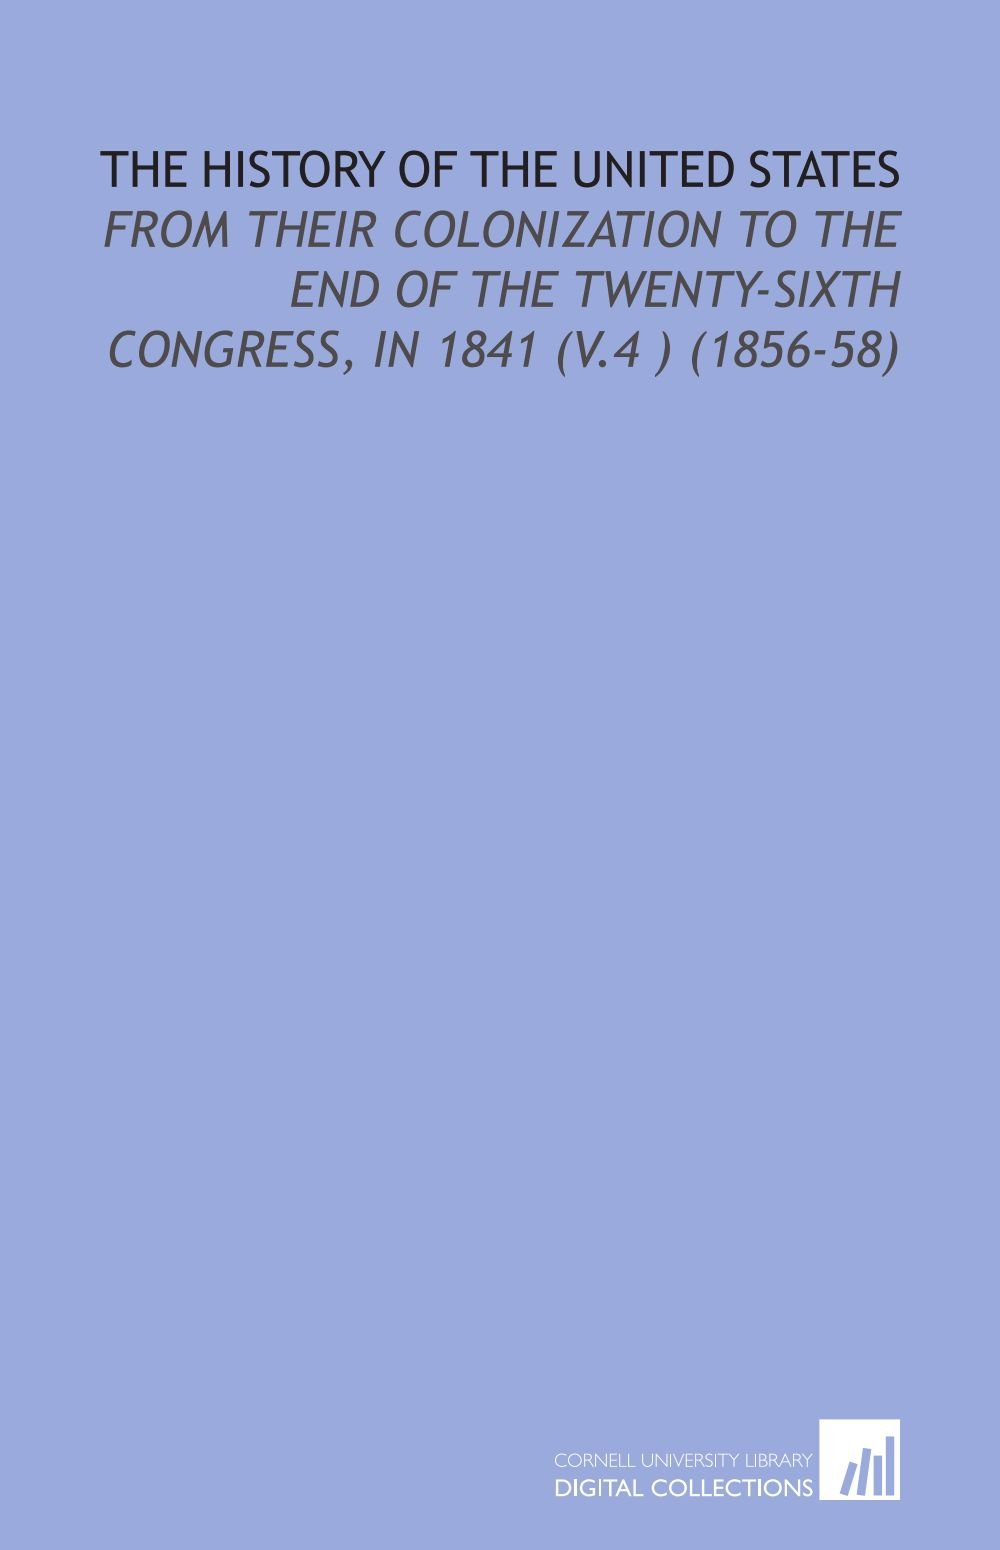 Download The History of the United States: From Their Colonization to the End of the Twenty-Sixth Congress, in 1841 (V.4 ) (1856-58) pdf